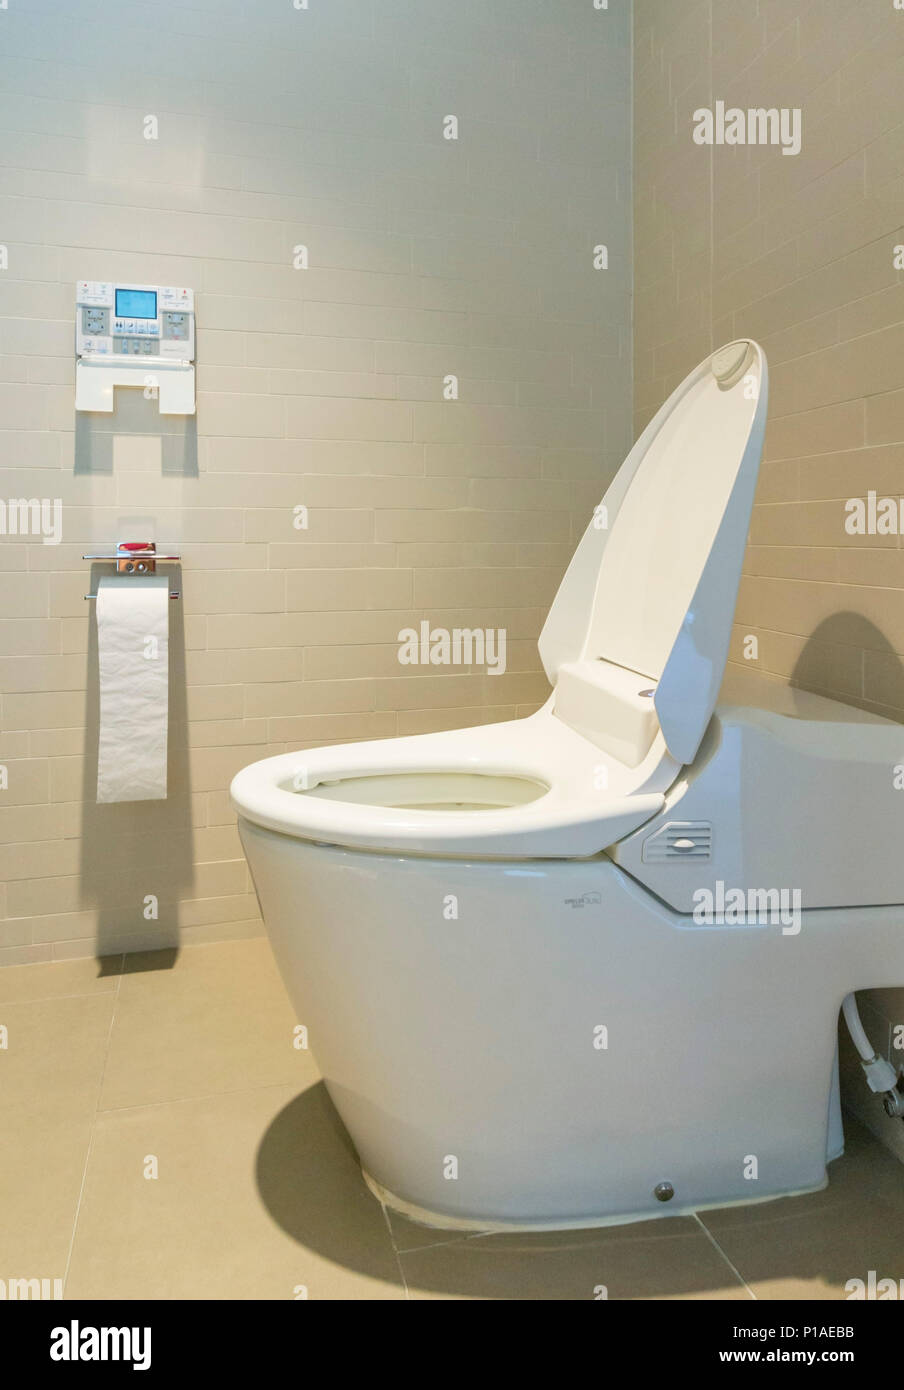 Japanese Toilet Stock Photos & Japanese Toilet Stock Images - Alamy